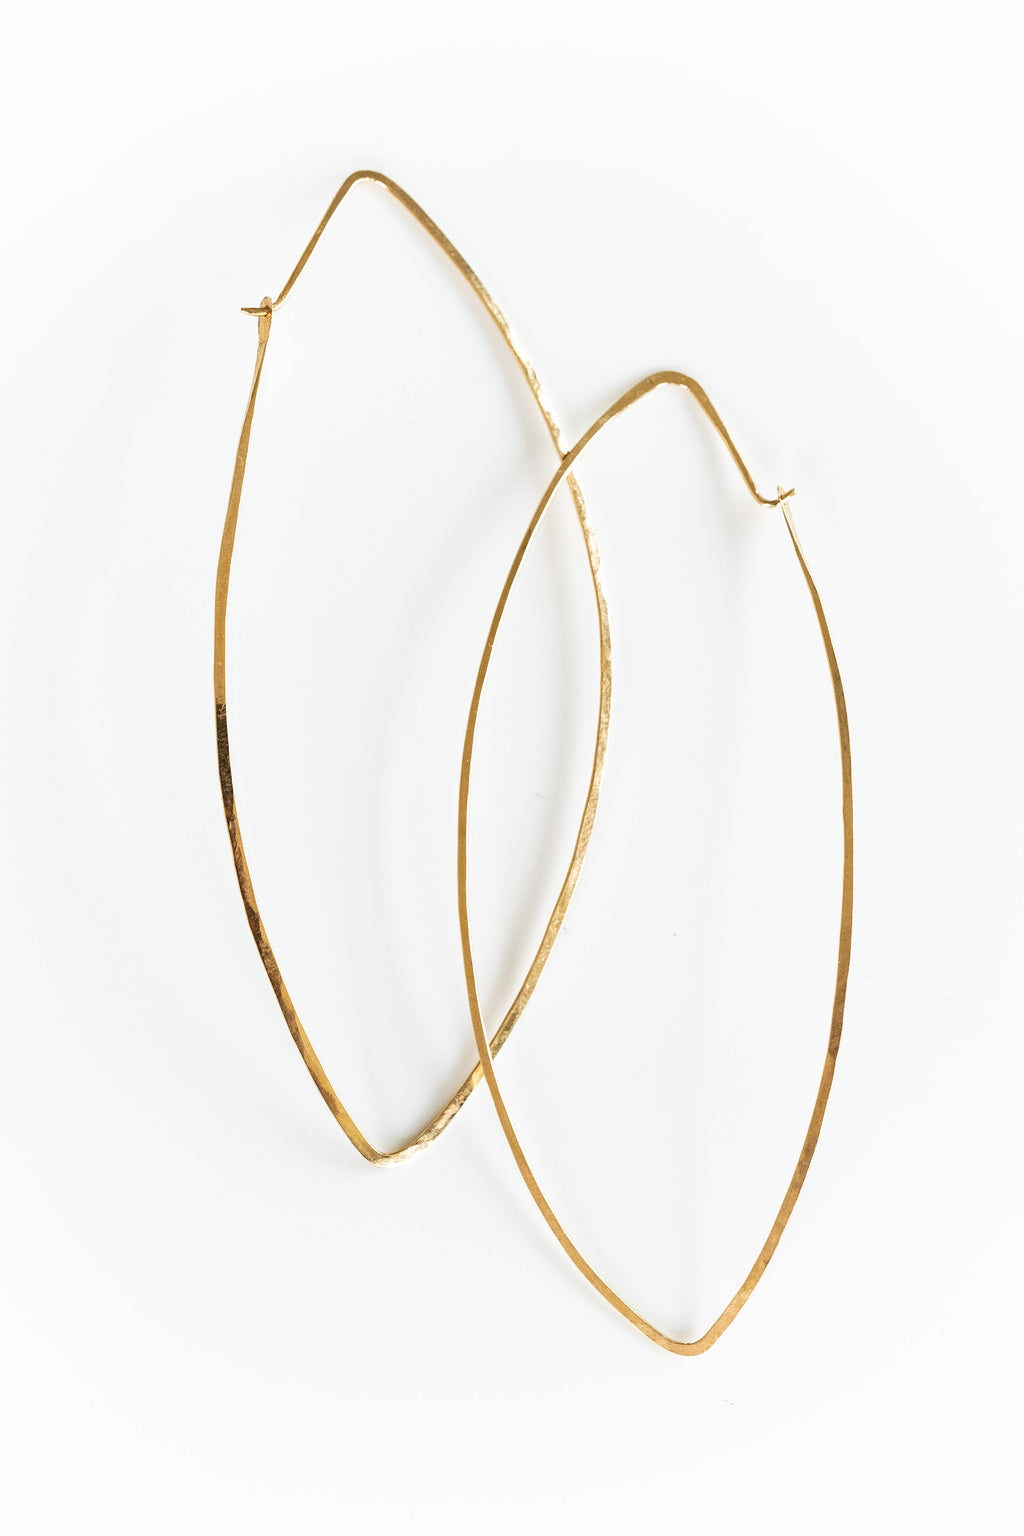 14K ANABELLA HOOP EARRINGS